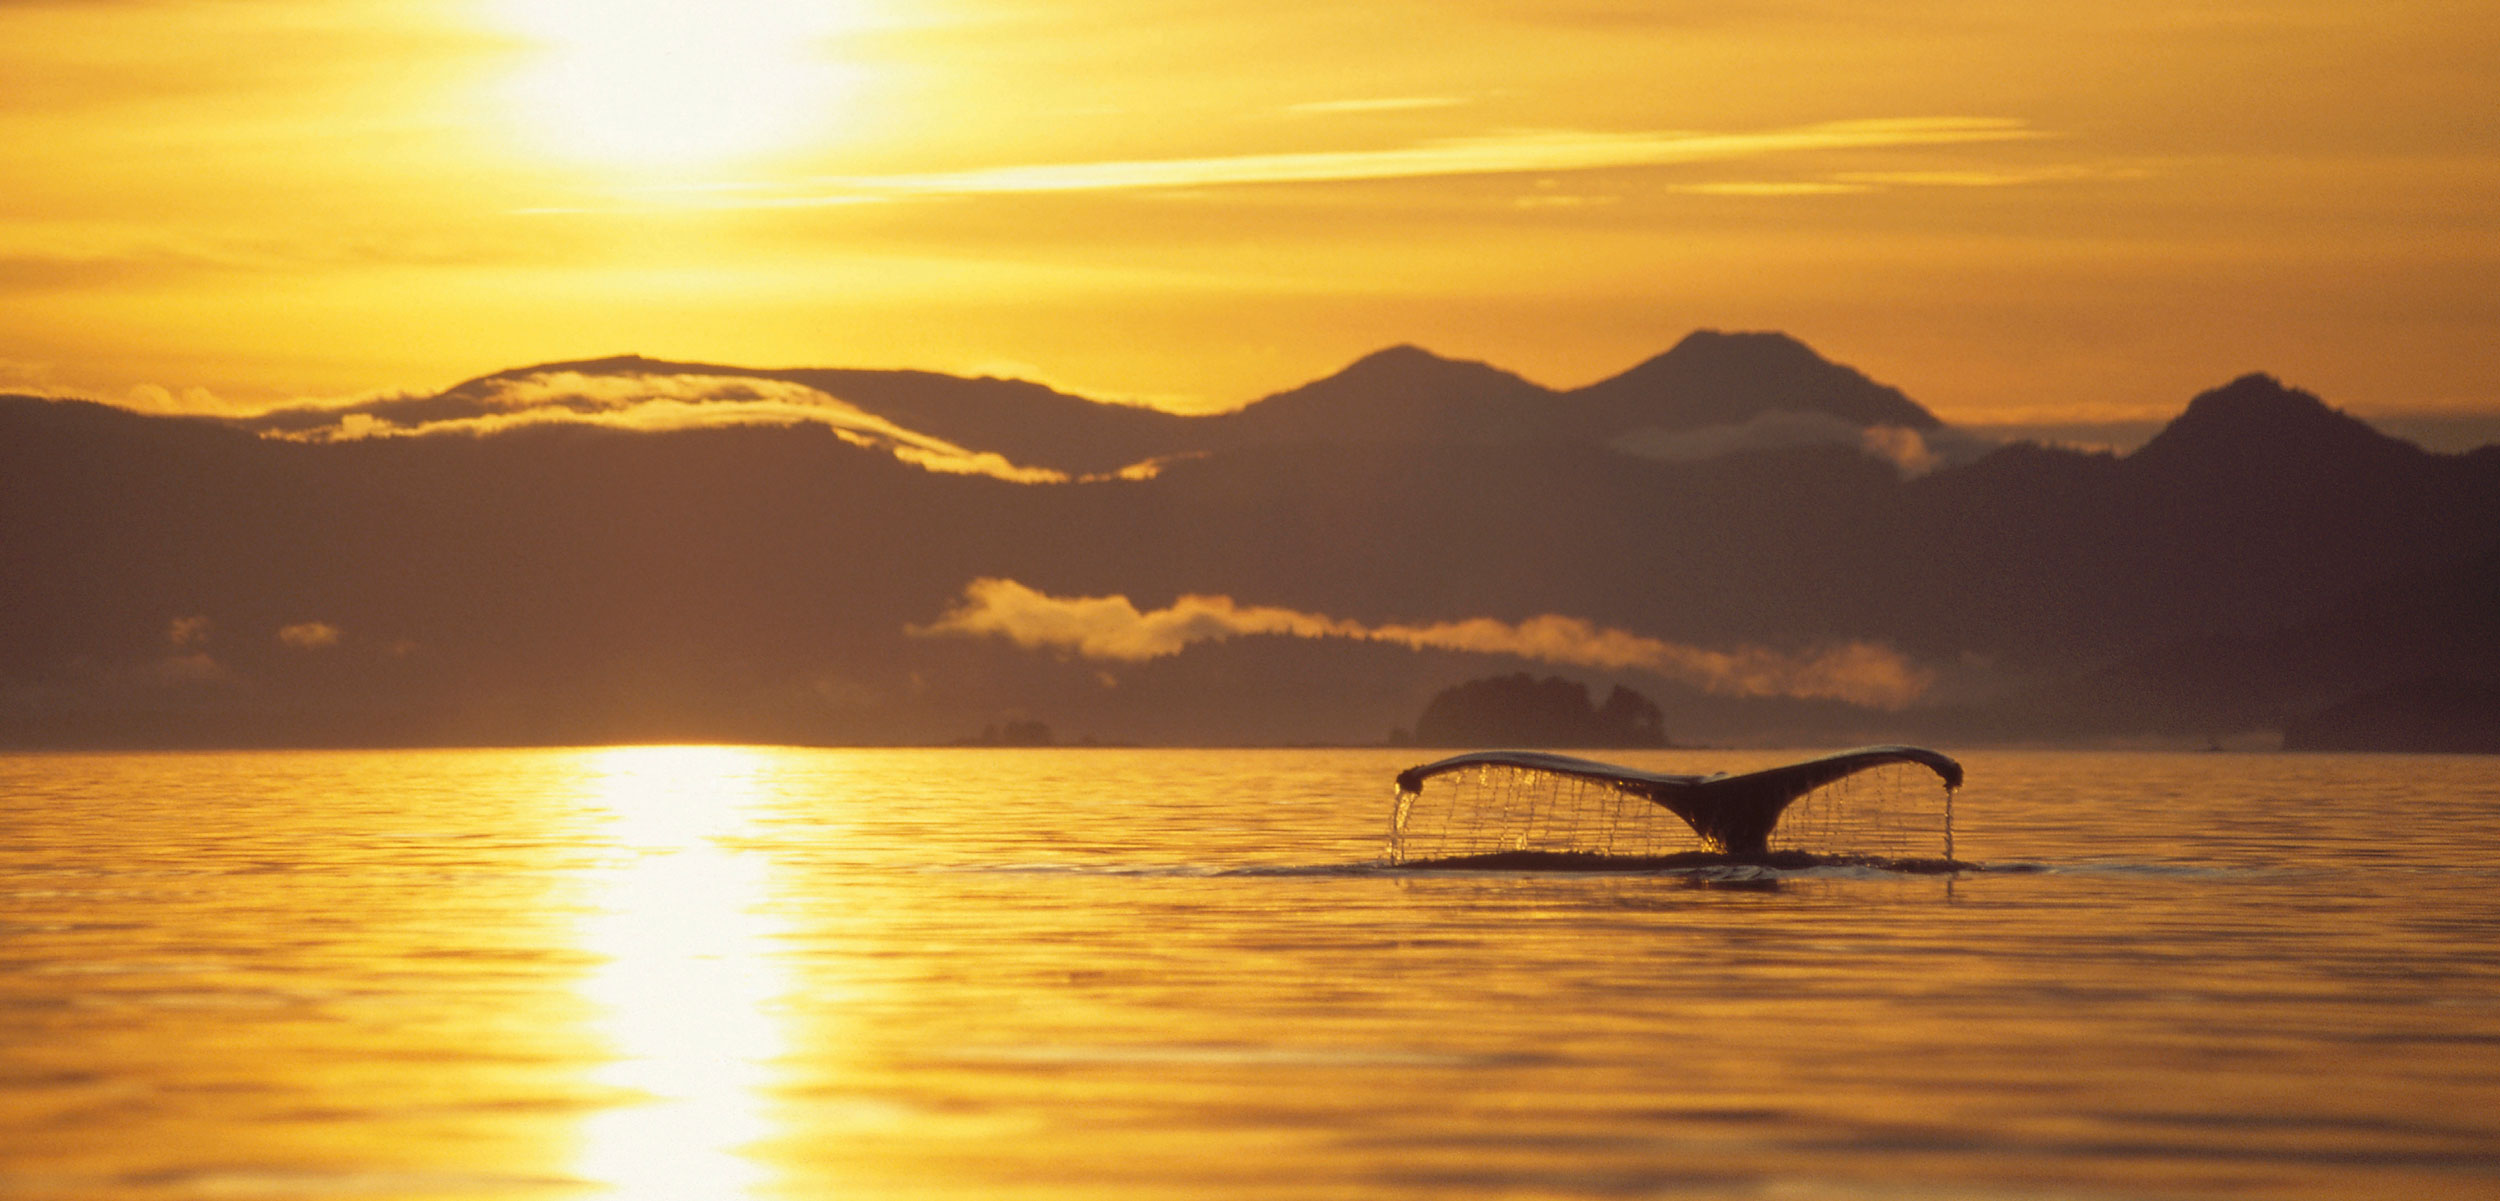 Humpback Whale (Megaptera novaeangliae) tail at sunset, Alaska